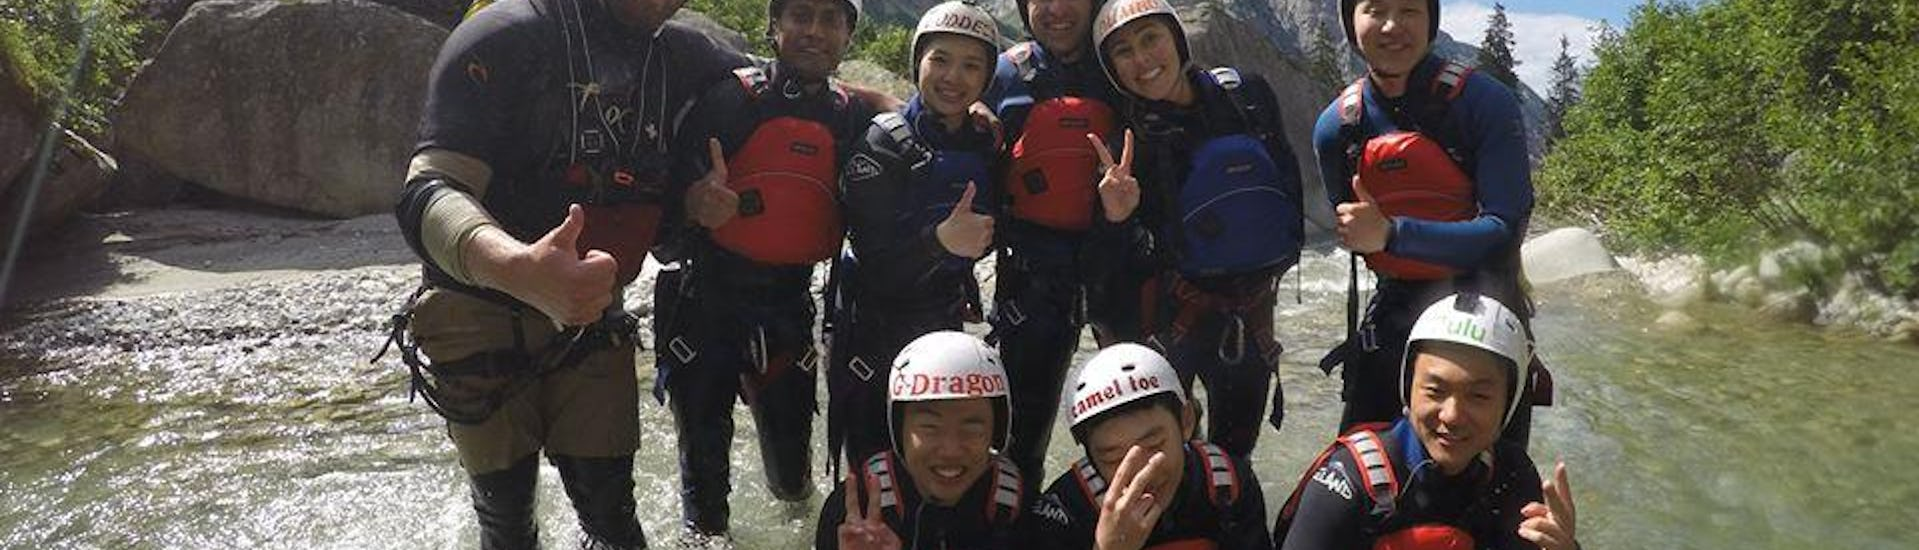 Canyoning for the Brave - Grimsel